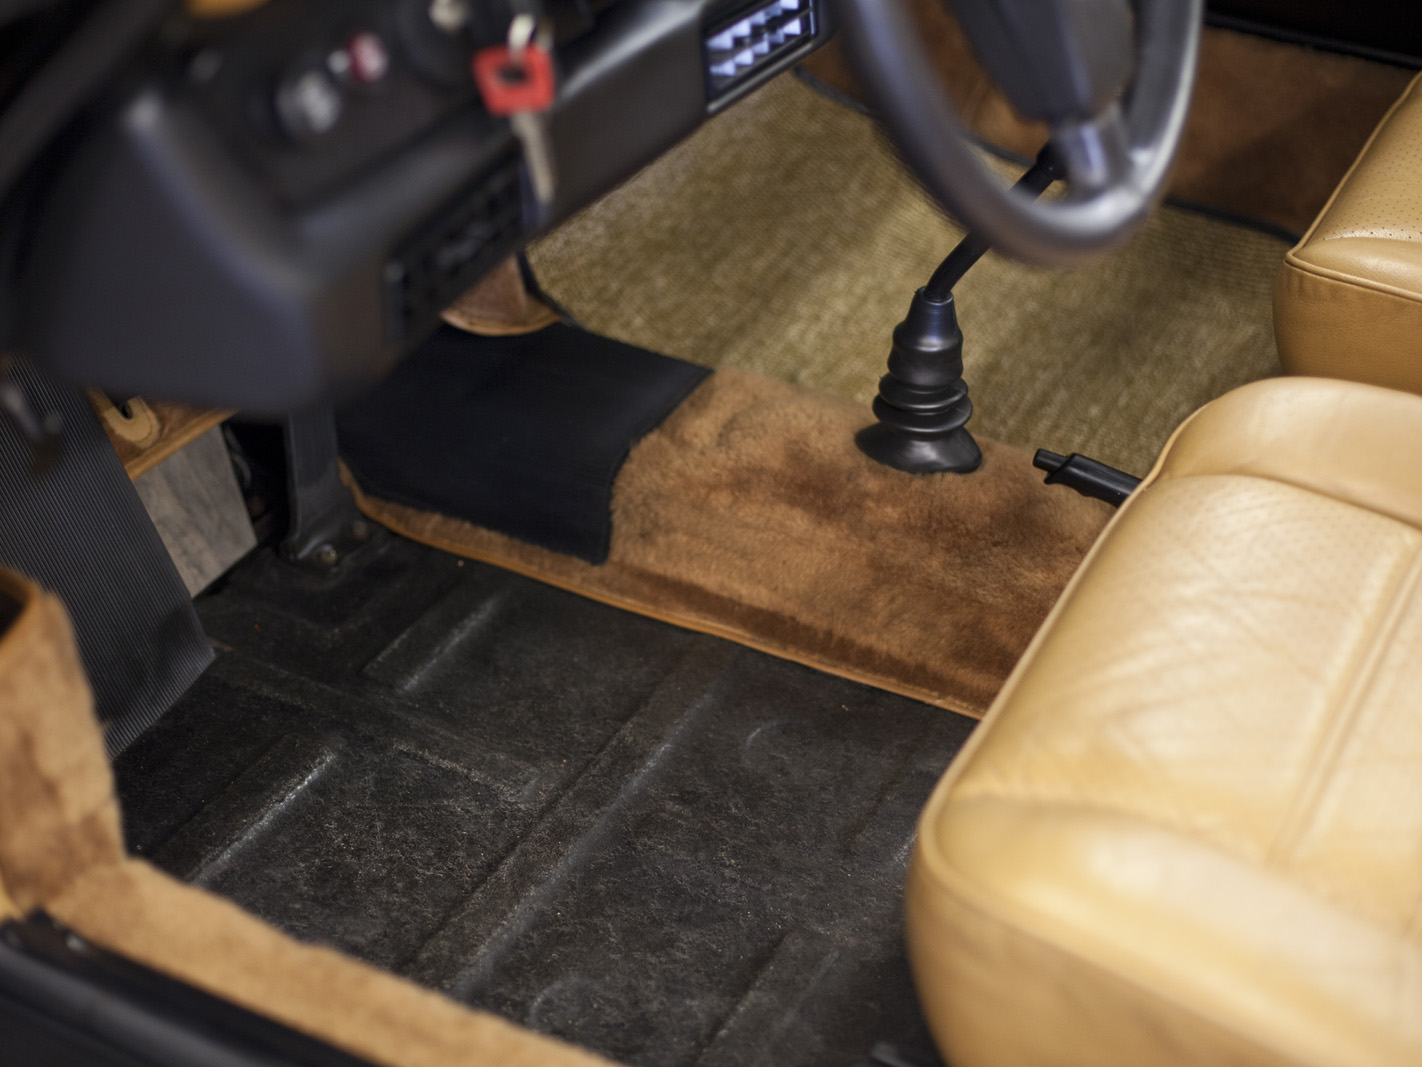 This photo is just to show how clean the car is. The carpet was just pulled out for the photo.